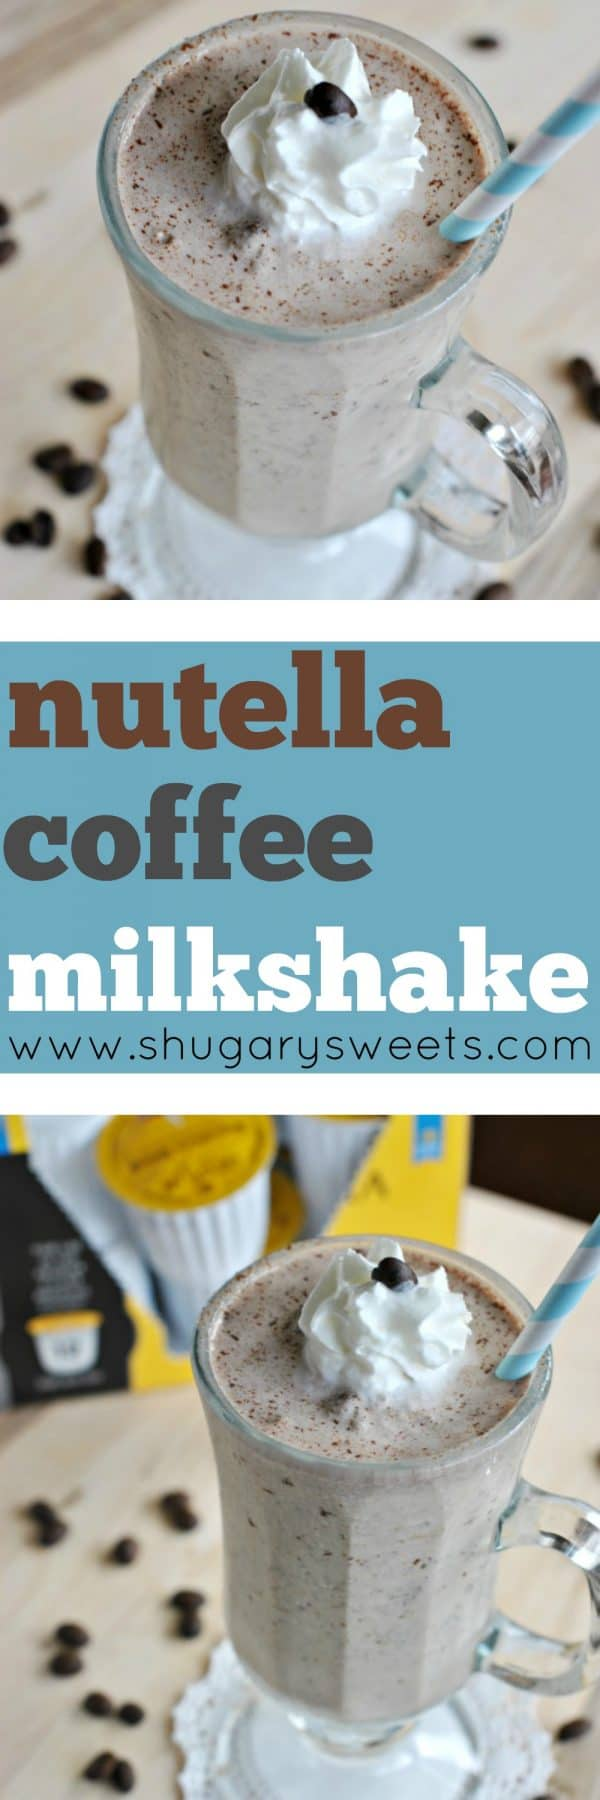 Looking for a mid-afternoon treat? How about whipping up a Nutella Coffee Milkshake? It's refreshing and delicious!